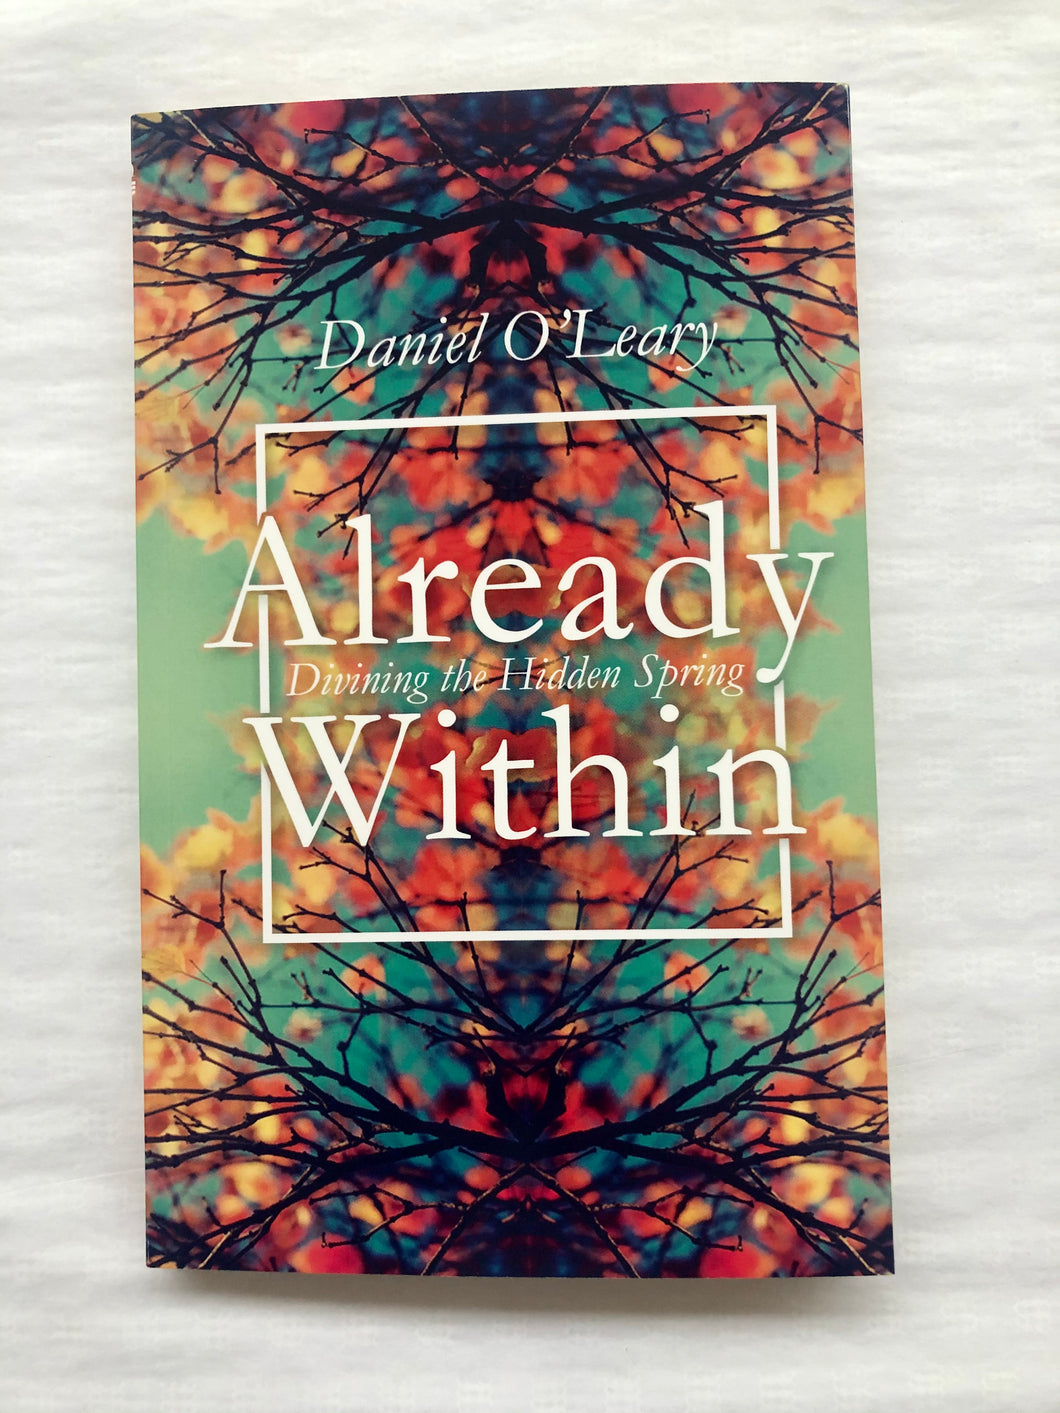 Already Within - Divining The Hidden Spring By Daniel O'Leary